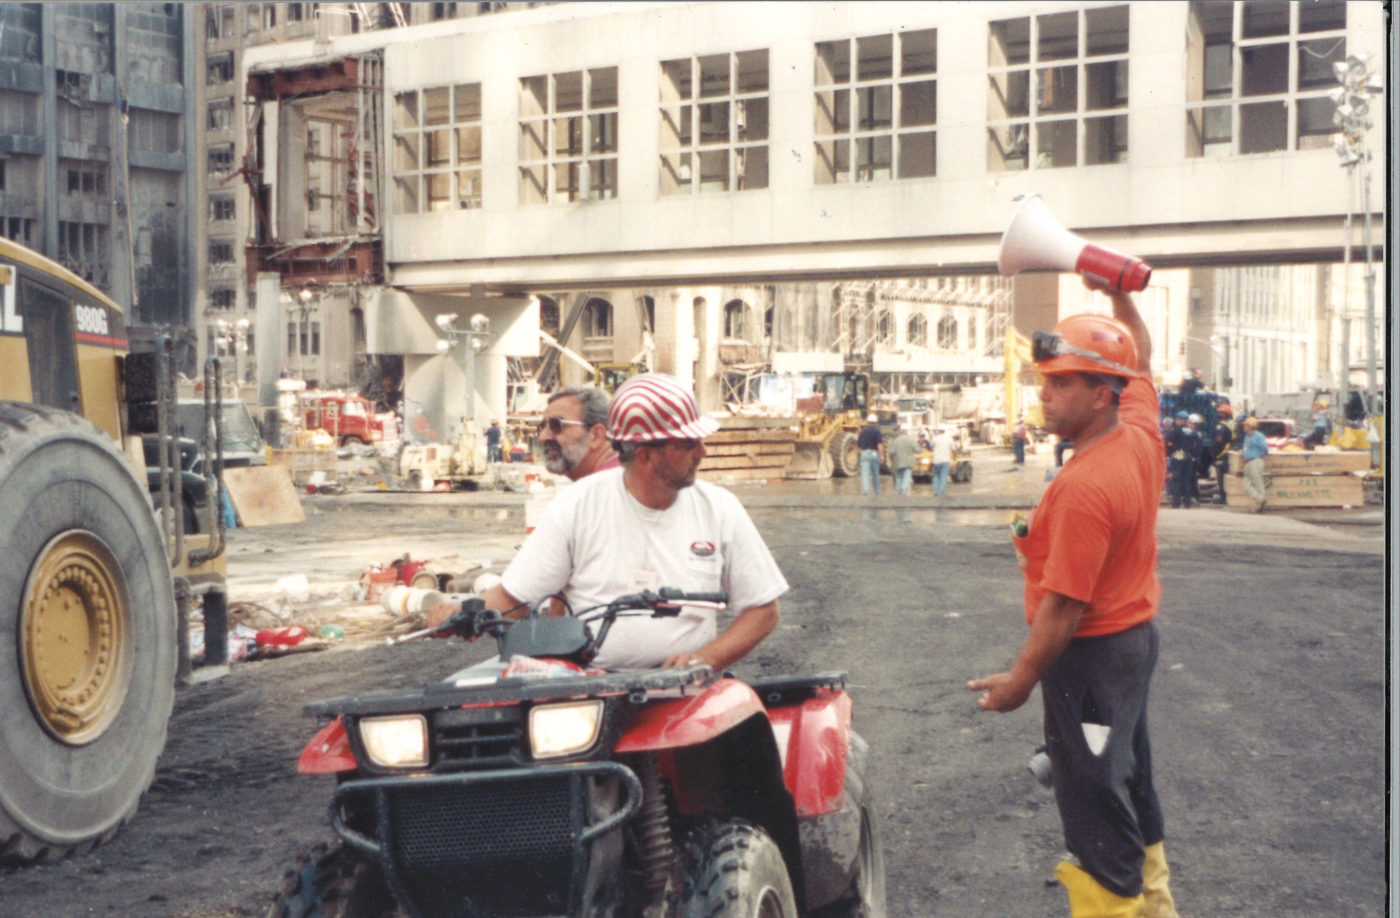 Unknown Workers Looking at Each other as one uses a Bullhorn at Ground Zero